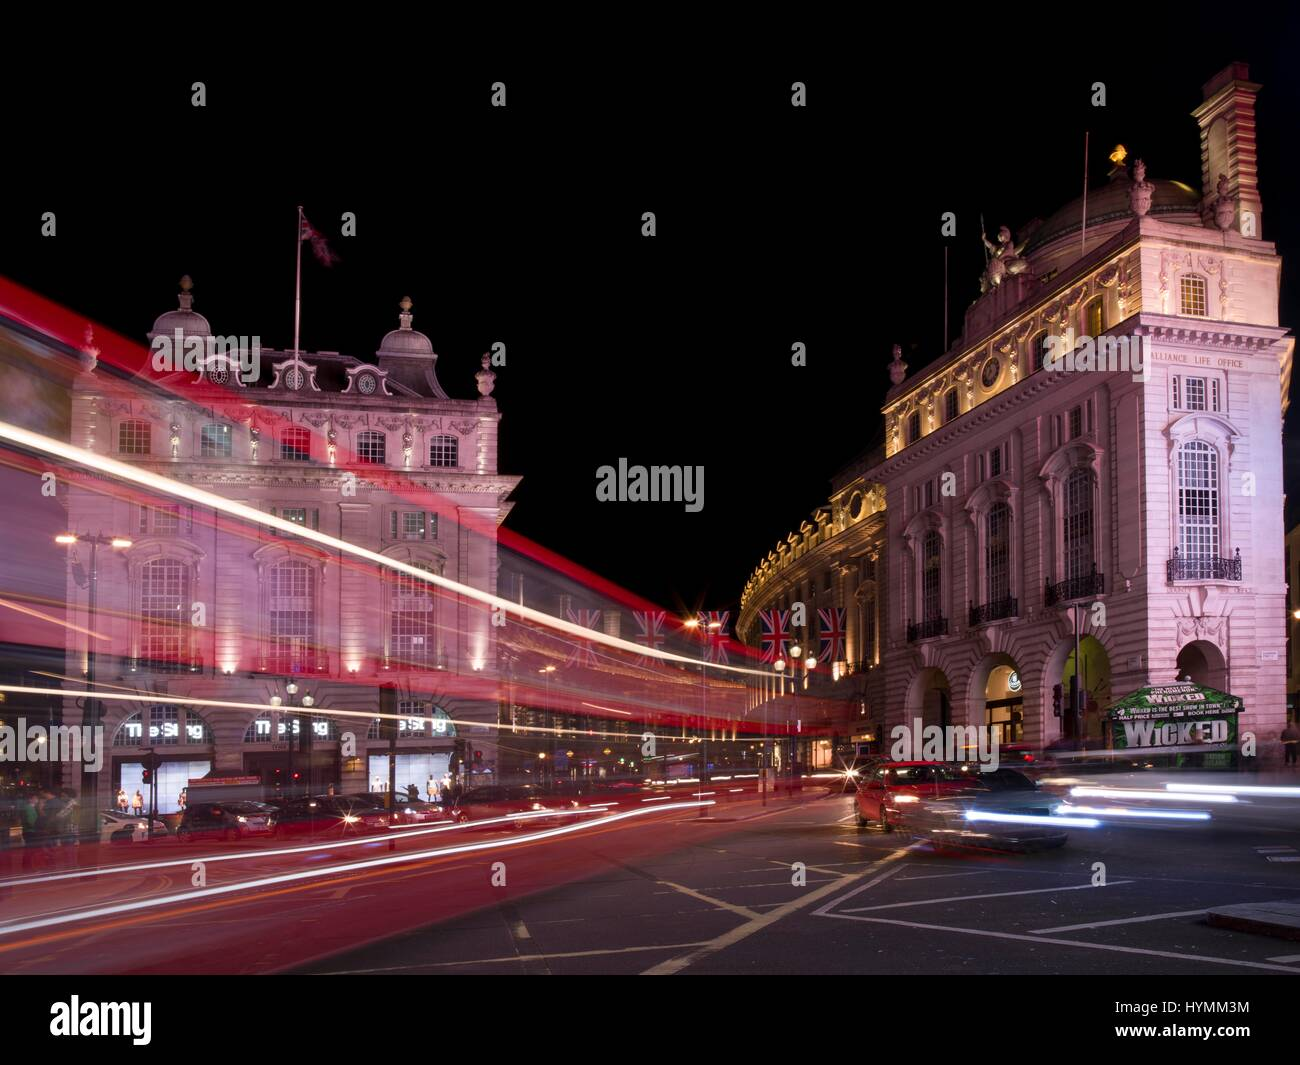 Road junction of Piccadilly Circus at nighttime in Central London, City of Westminister, England, United Kingdom - Stock Image